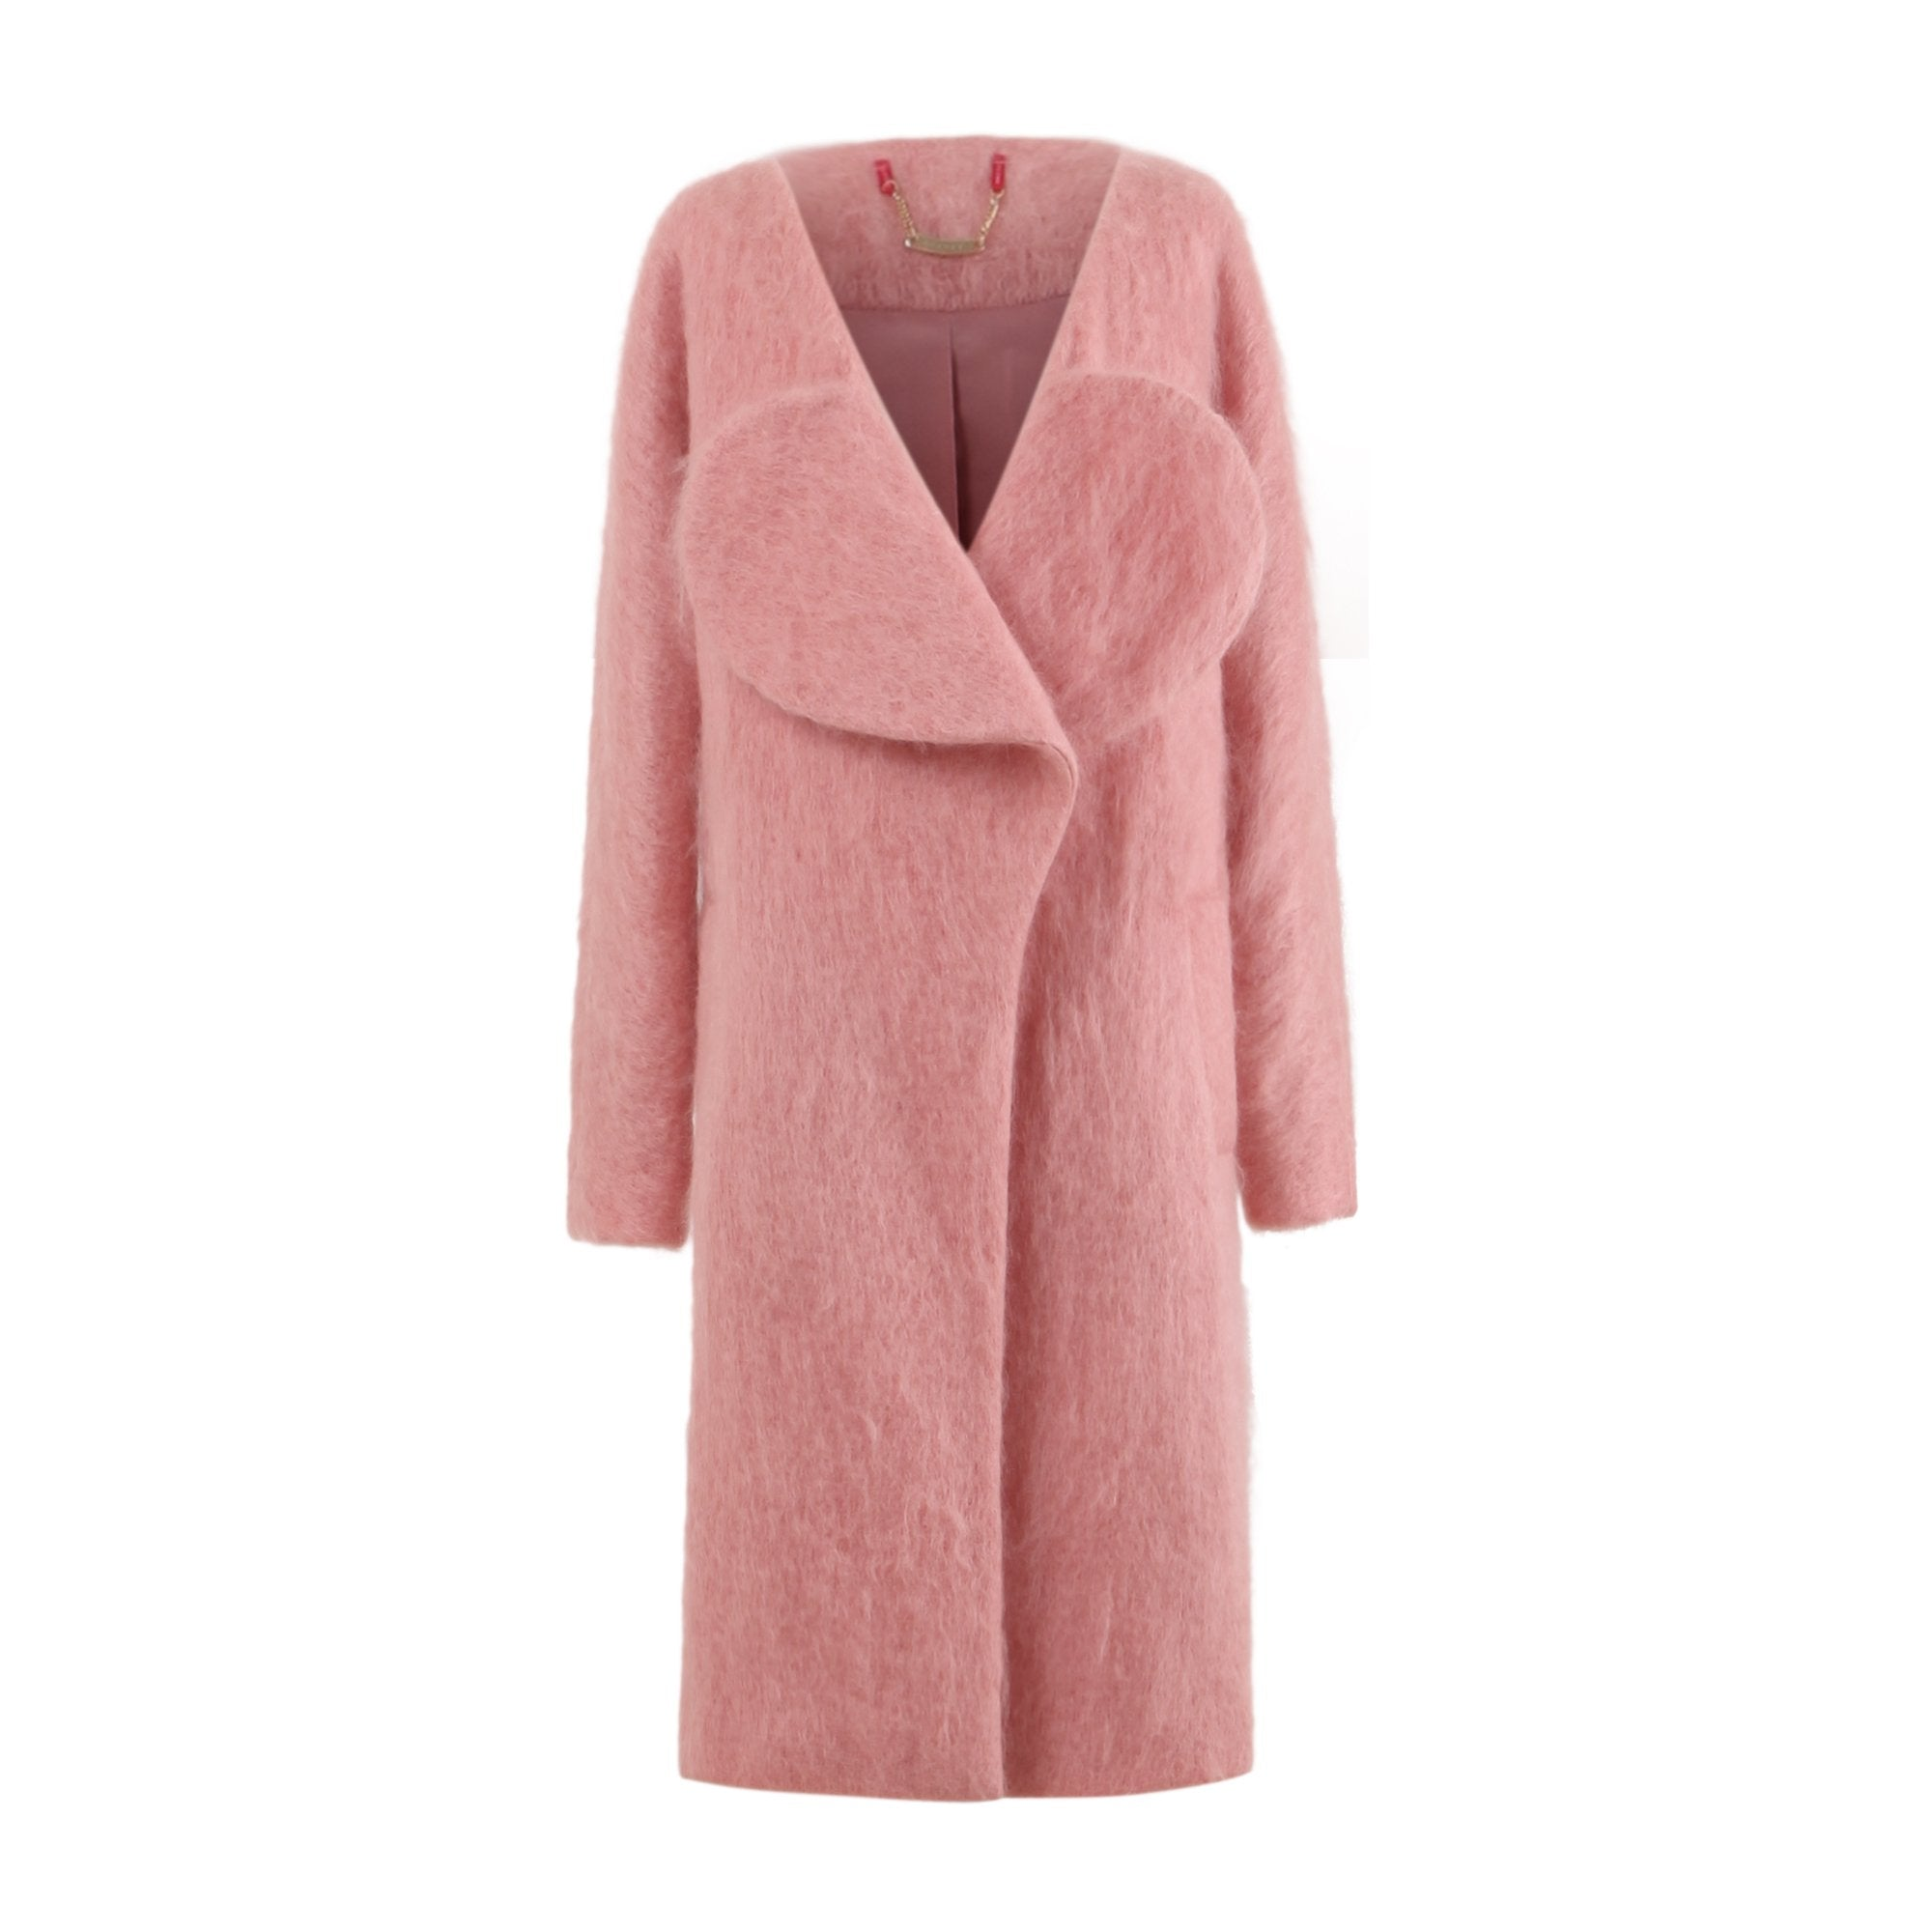 Lovuee Heart Collared Mohair Coat [Yellow/ Pink]